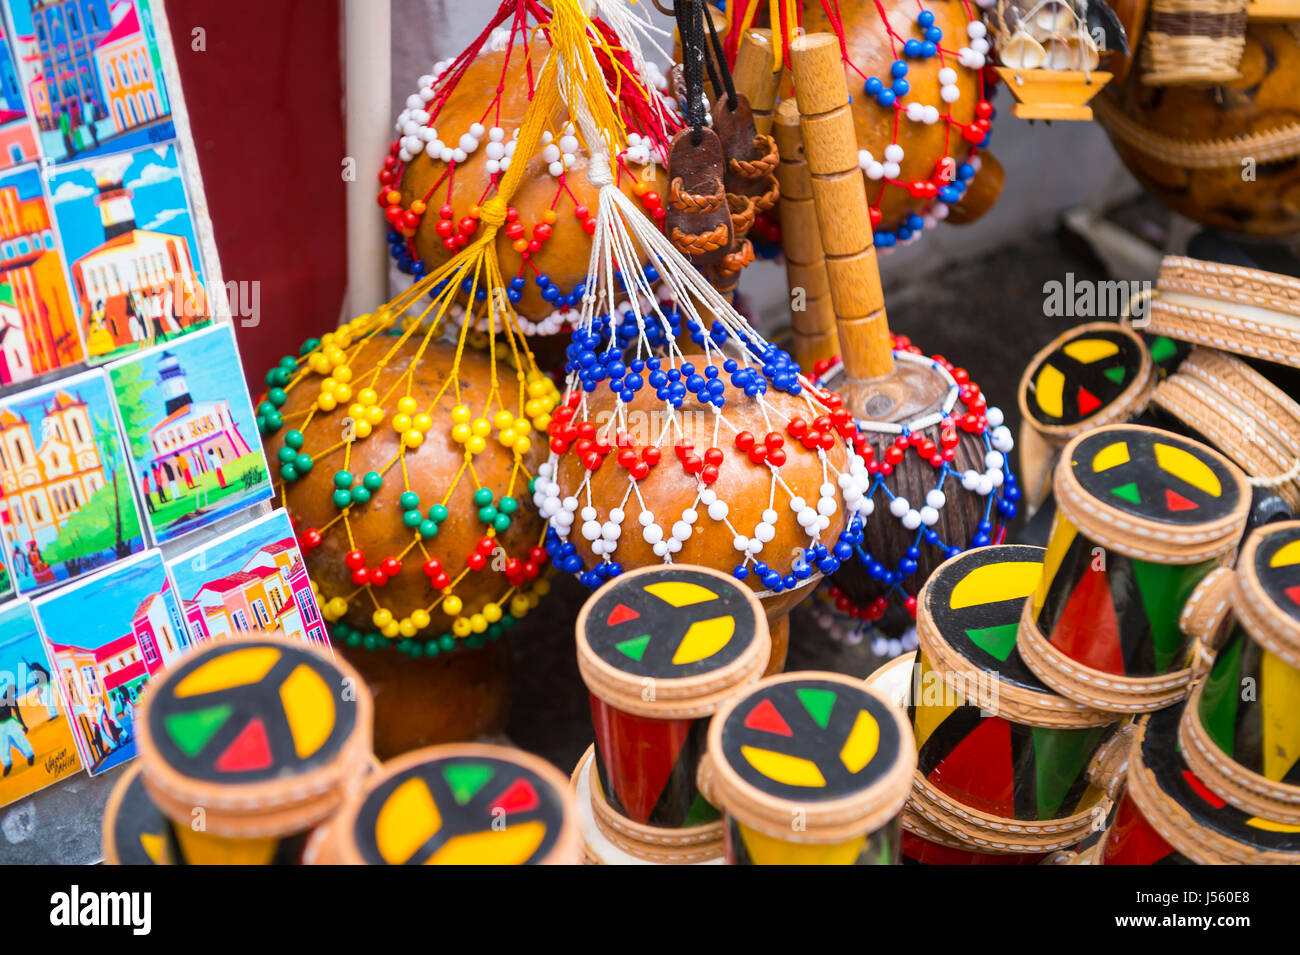 SALVADOR, BRAZIL - MARCH 9, 2017: A souvenir shop selling local handicrafts and Afro-Brazilian musical instruments - Stock Image